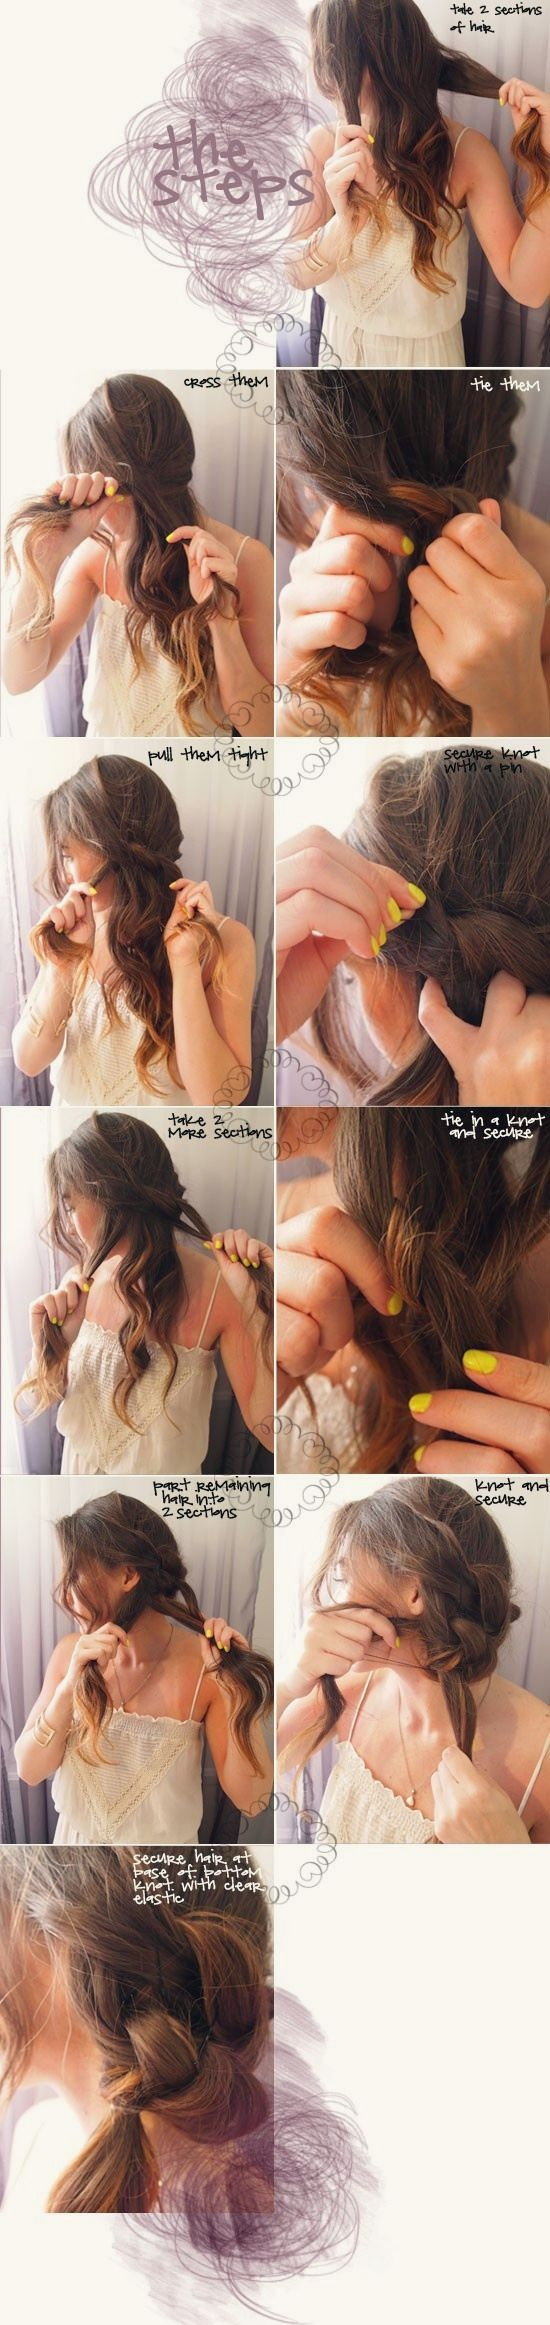 Admirable 1000 Images About Ponytail Hairstyles On Pinterest Ponytail Hairstyles For Women Draintrainus